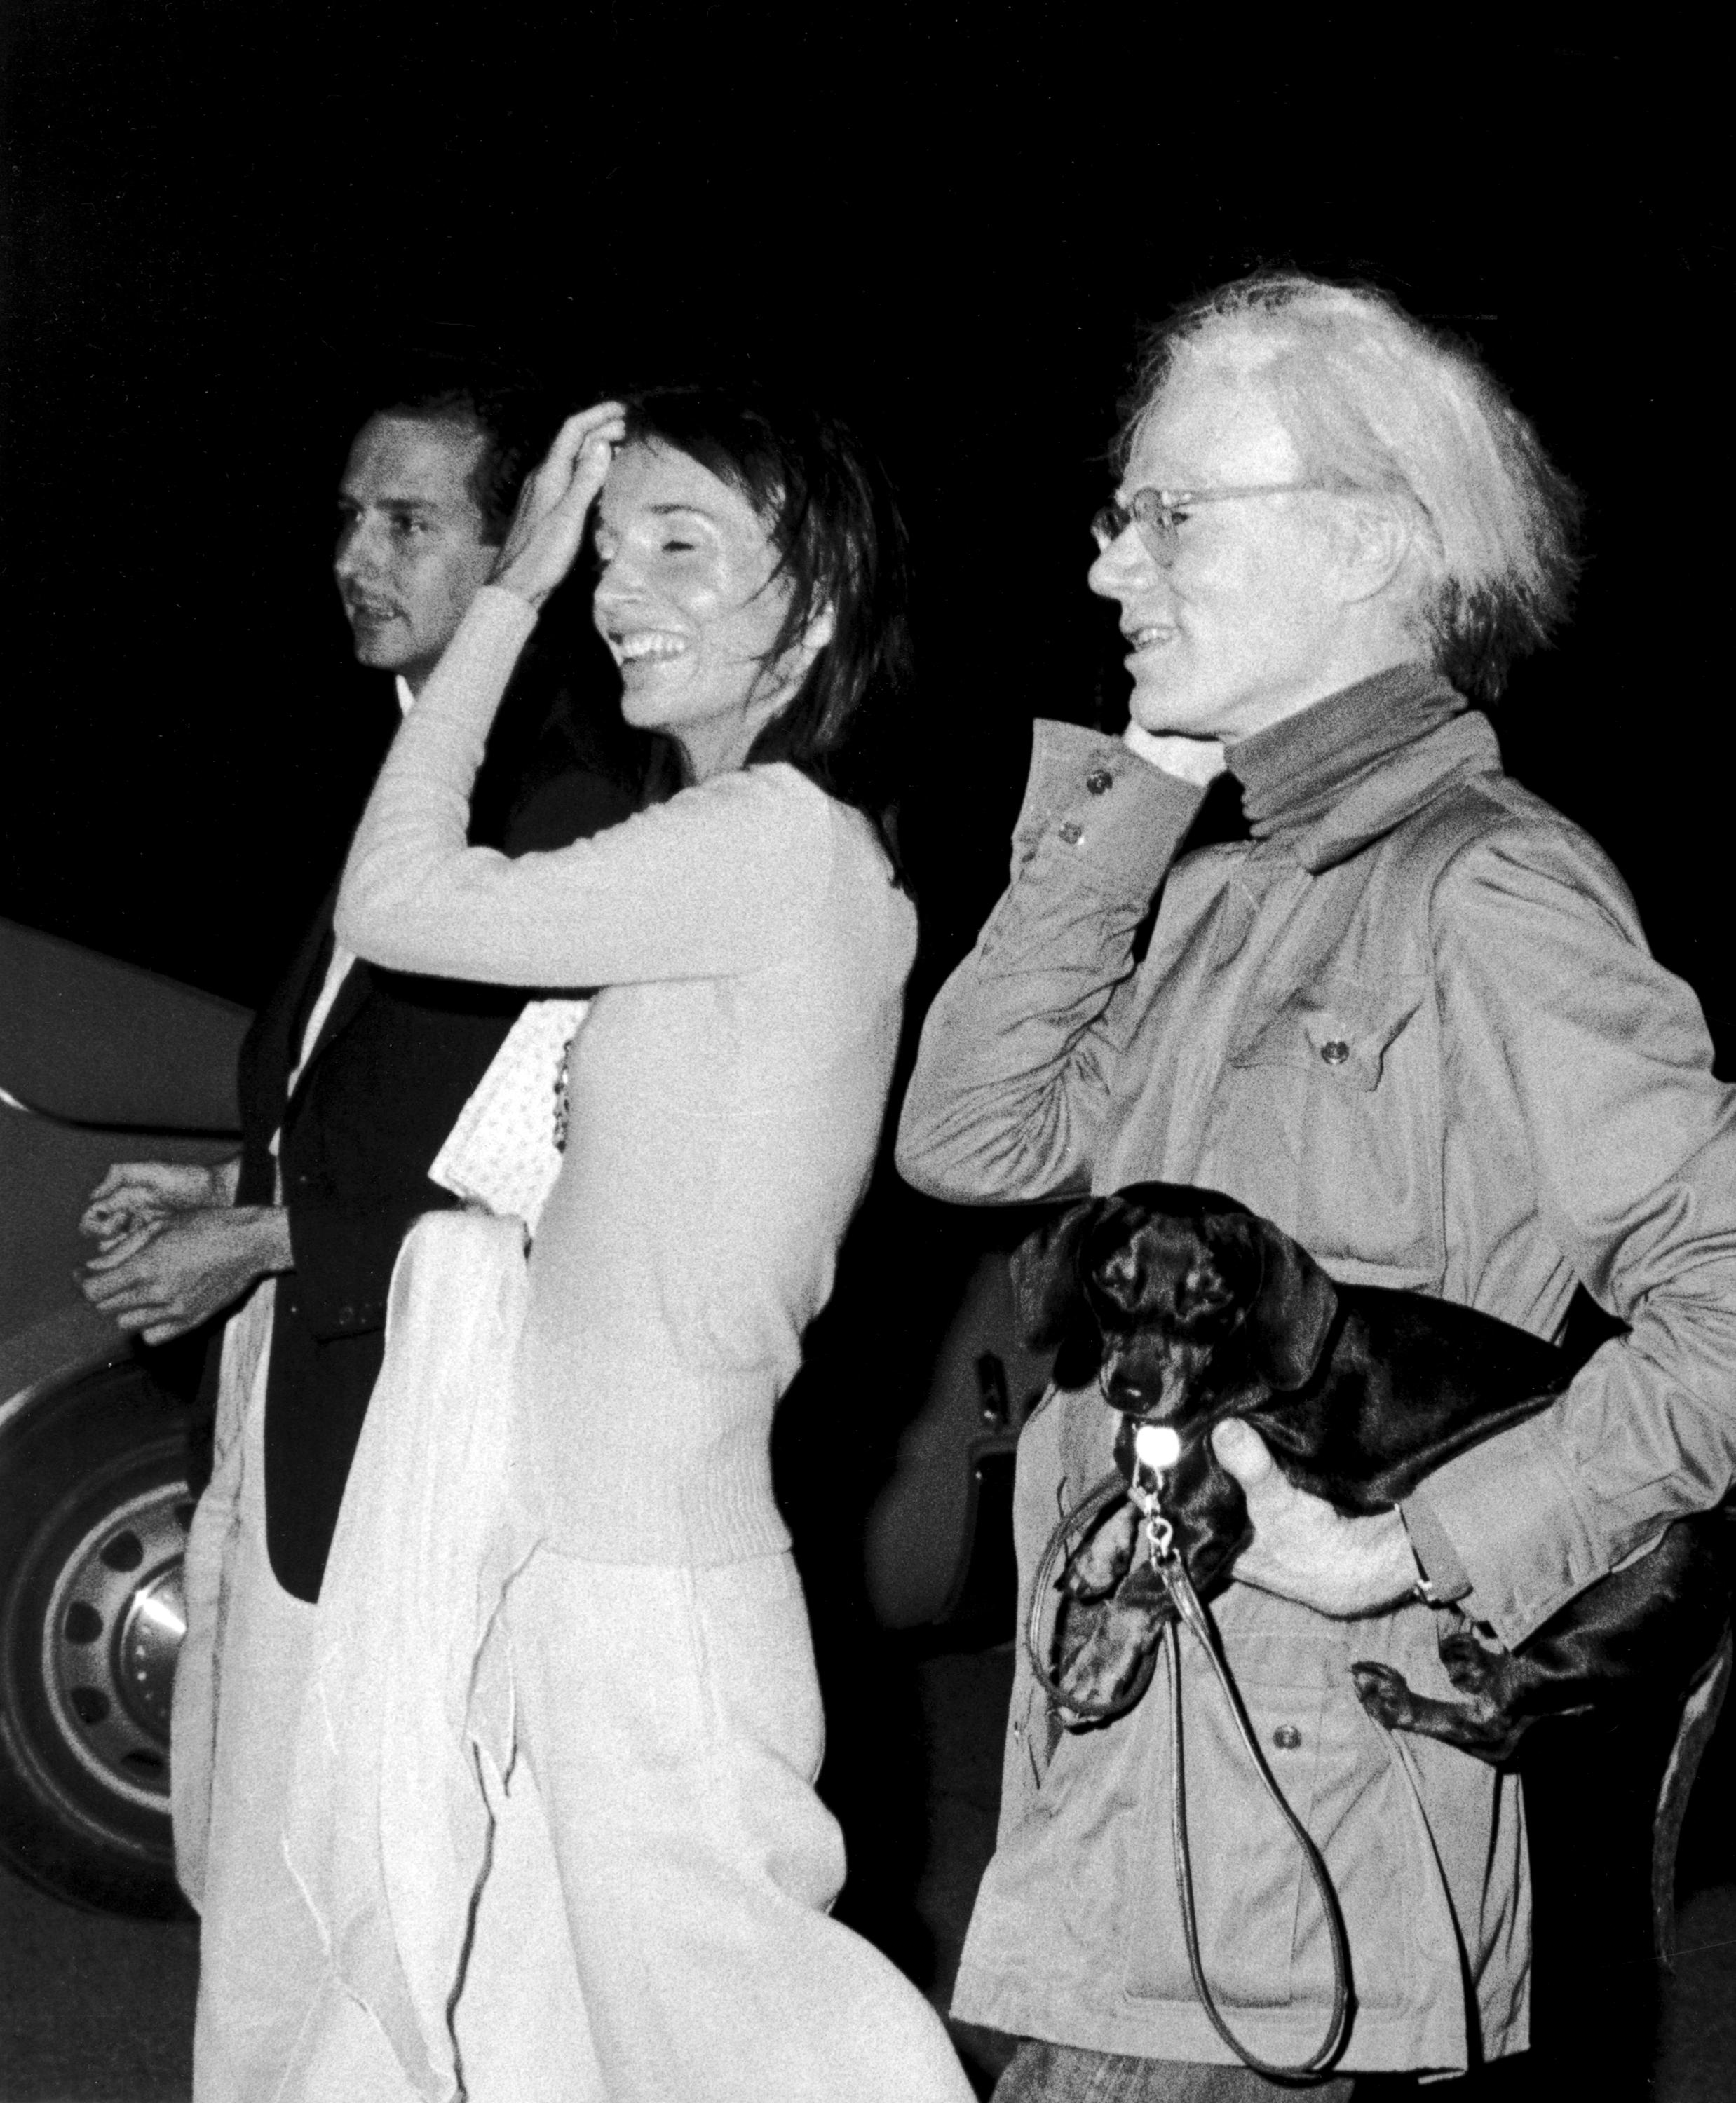 Fred Hughes, Lee Radziwill, and Andy Warhol with dog Archie, Montauk, New York